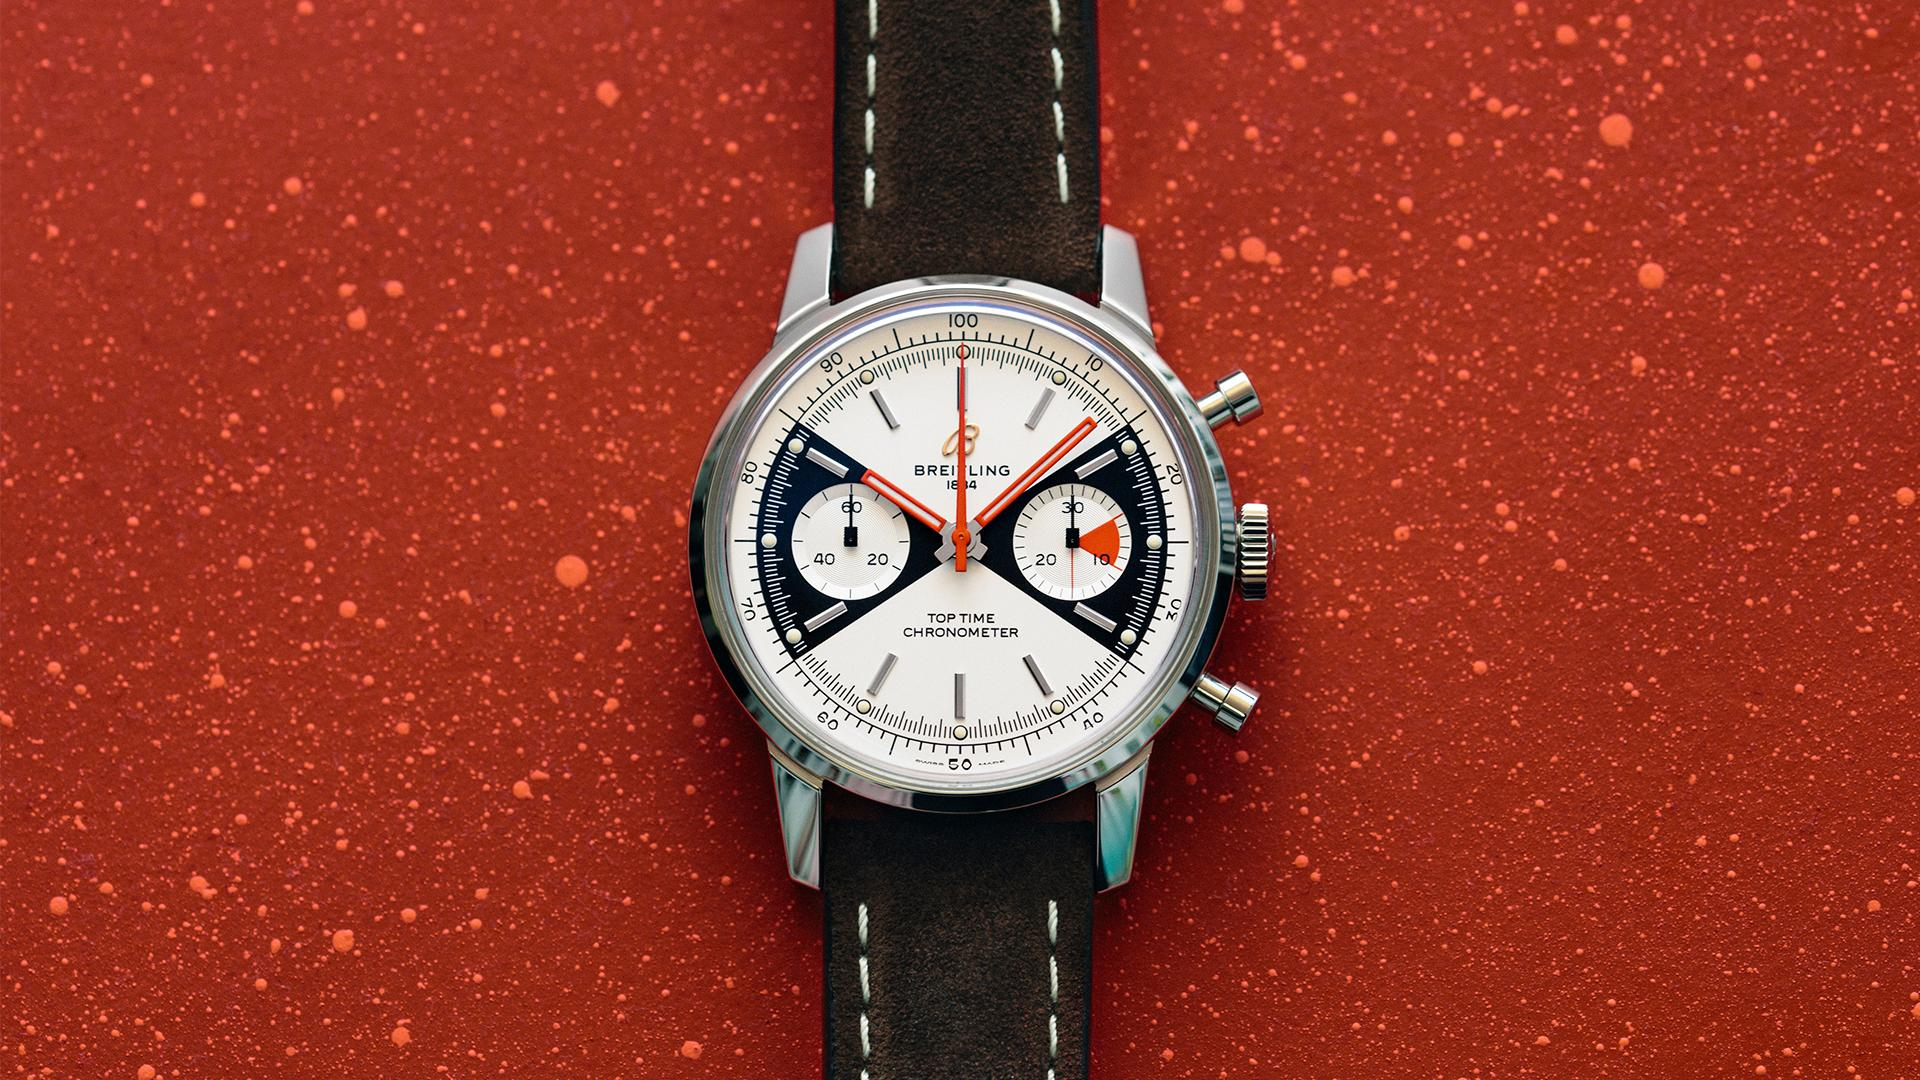 Breitling Top Time Limited Edition watch